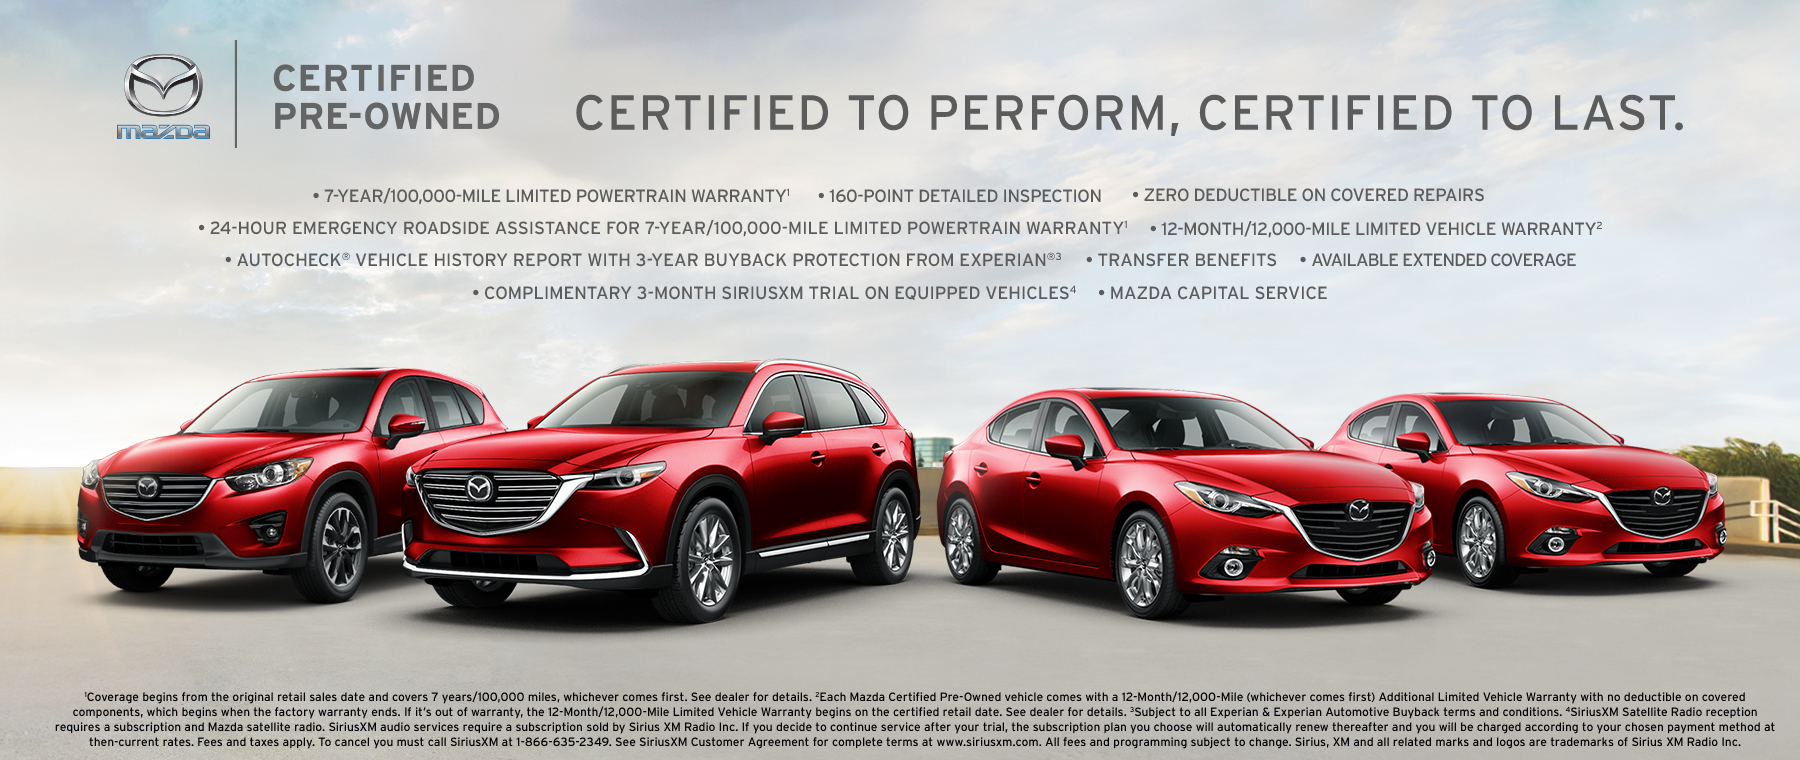 Certified Pre Owned Vehicles Lee Johnson Mazda